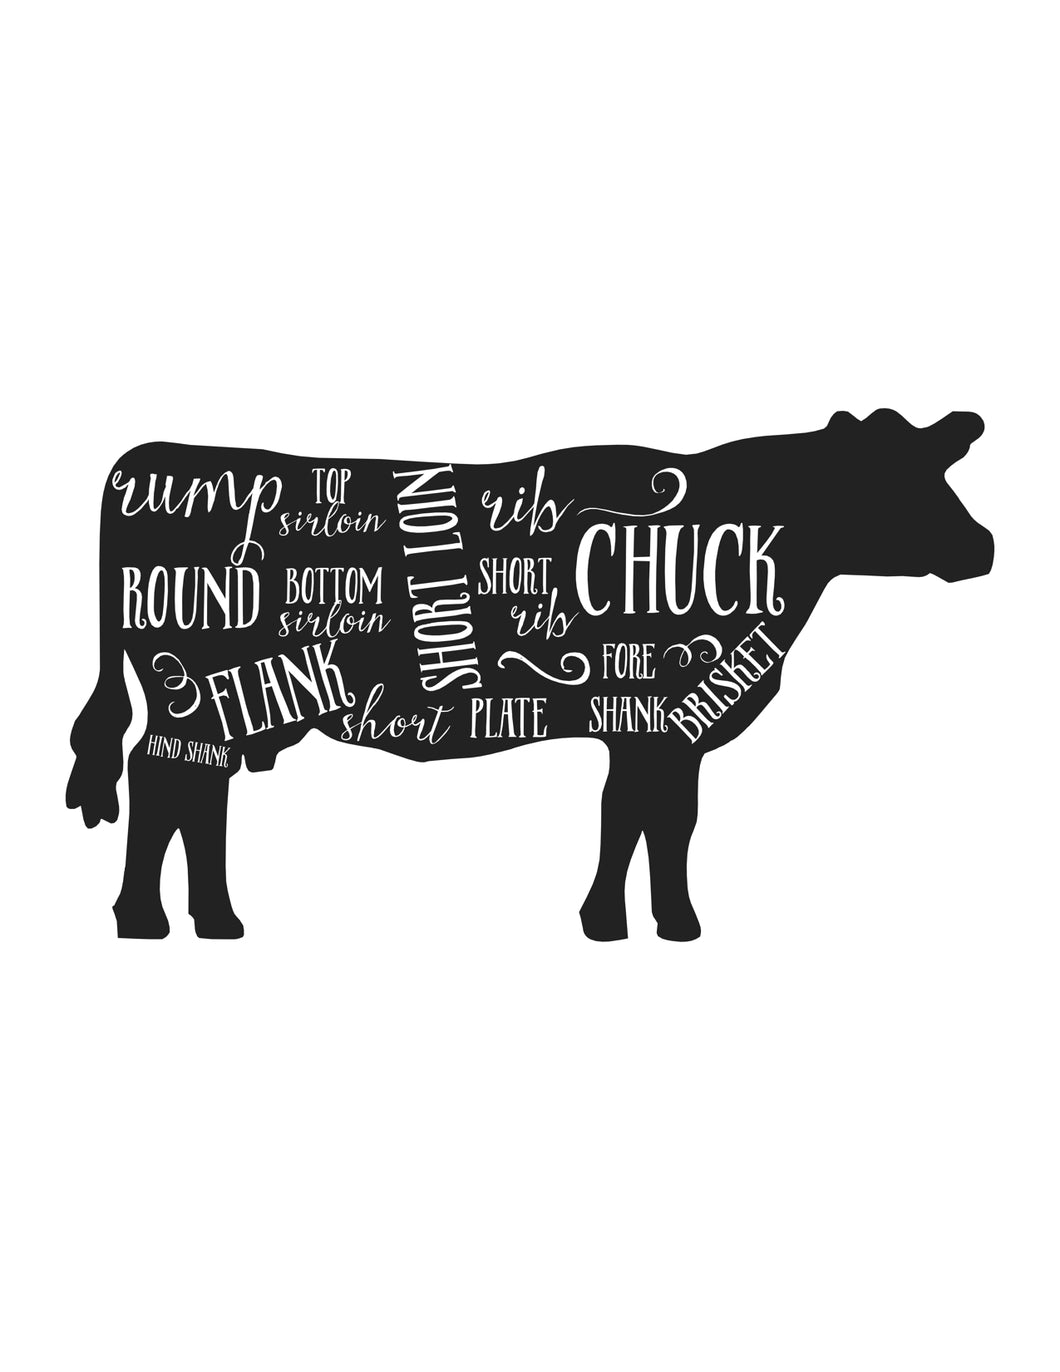 Cow+Butcher+Printable.jpg